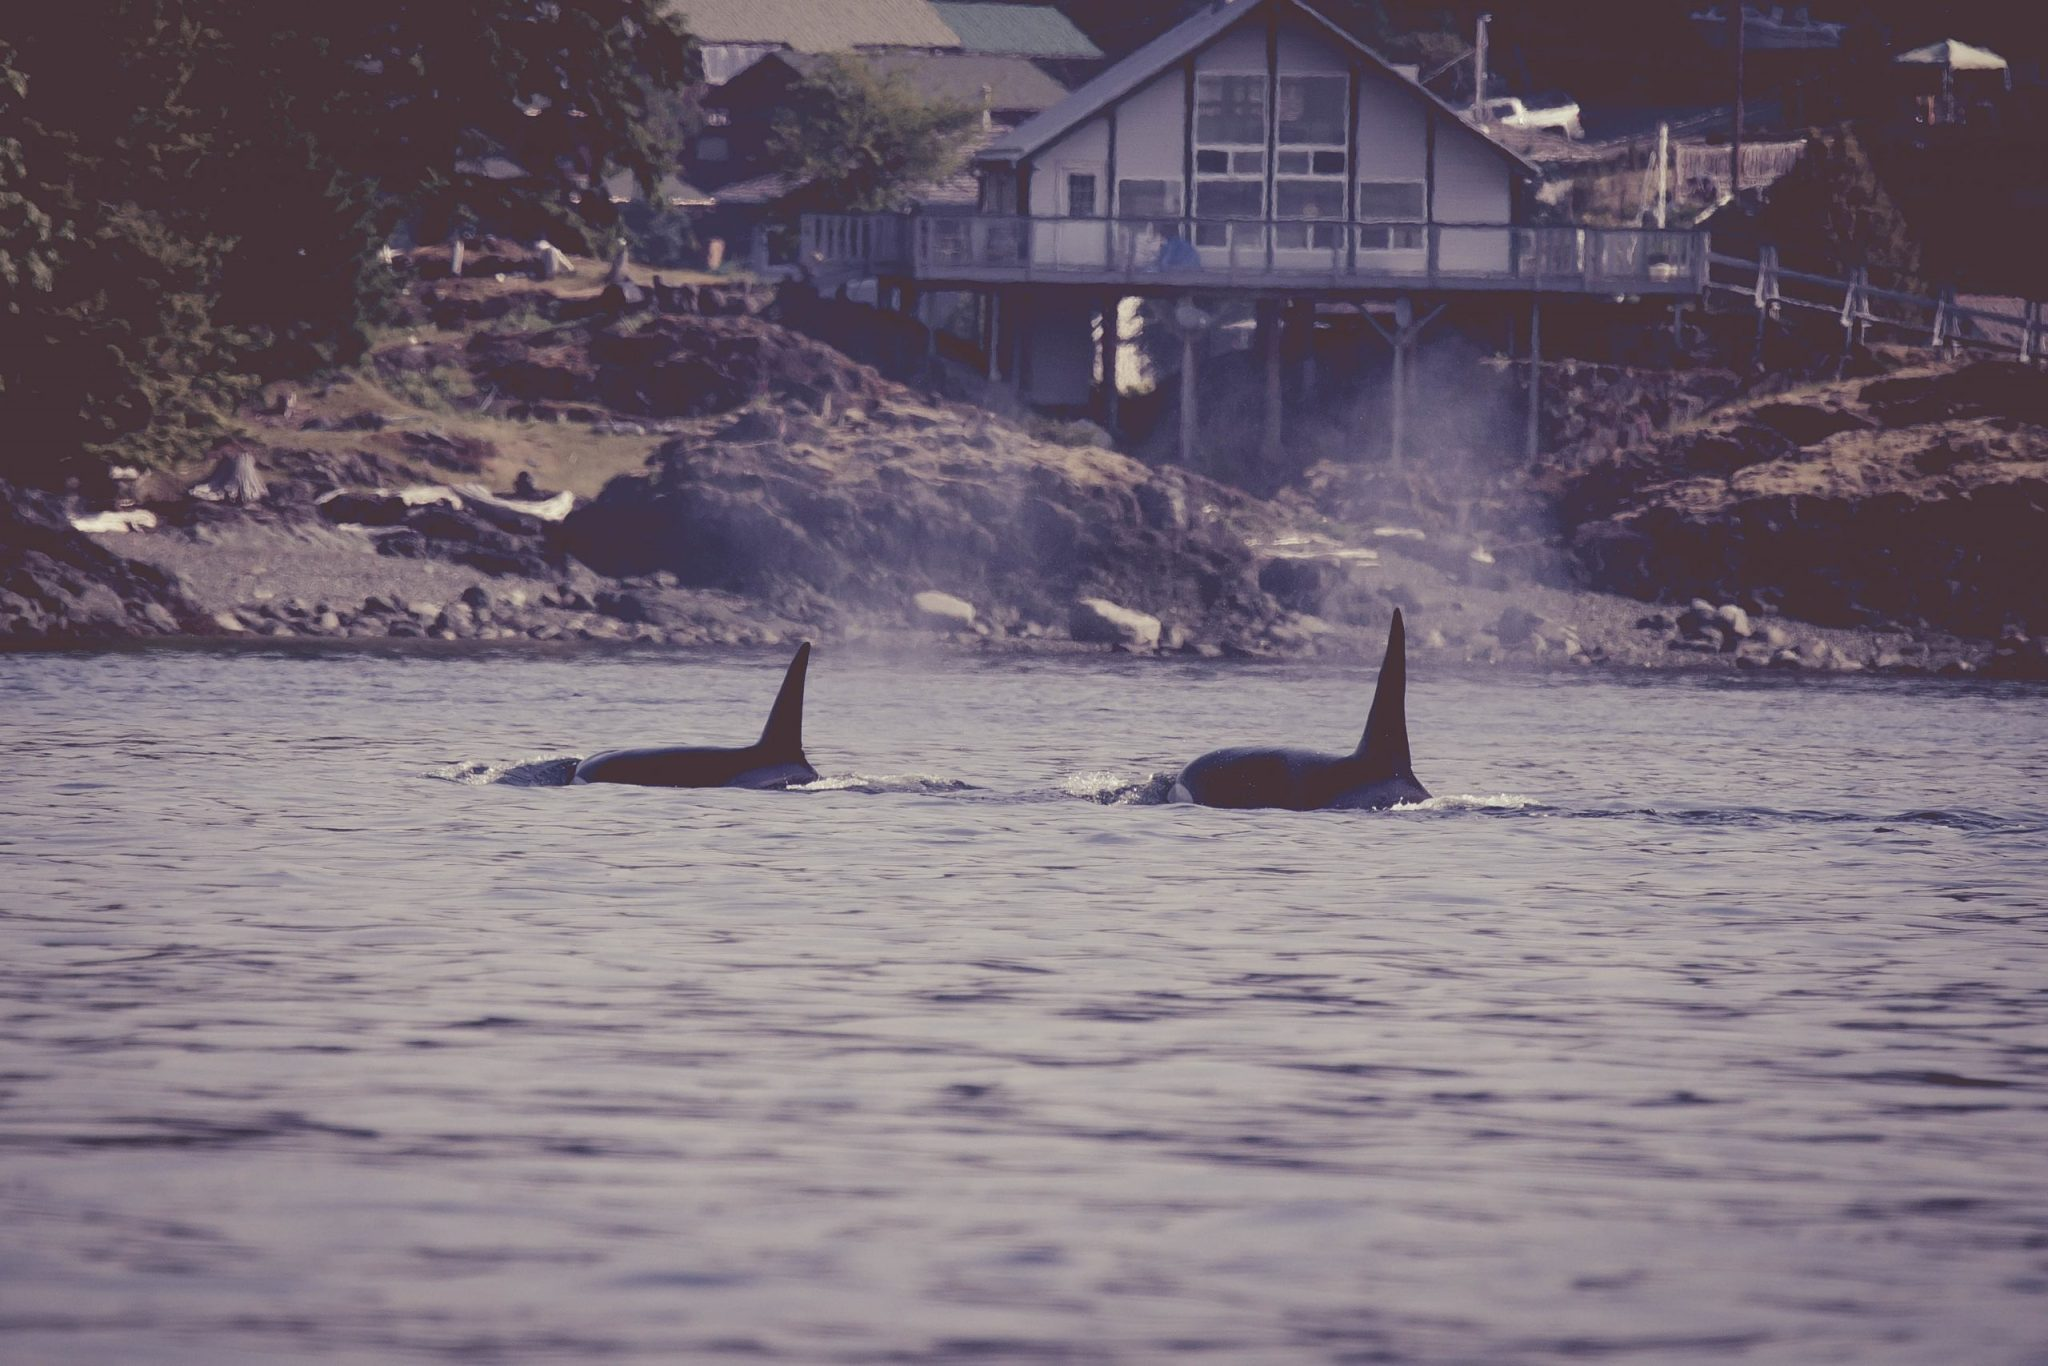 Orca, Killer Whale, Discovery West Adventures, Whale Watching Campbell River, BC, Brown's Bay Resort